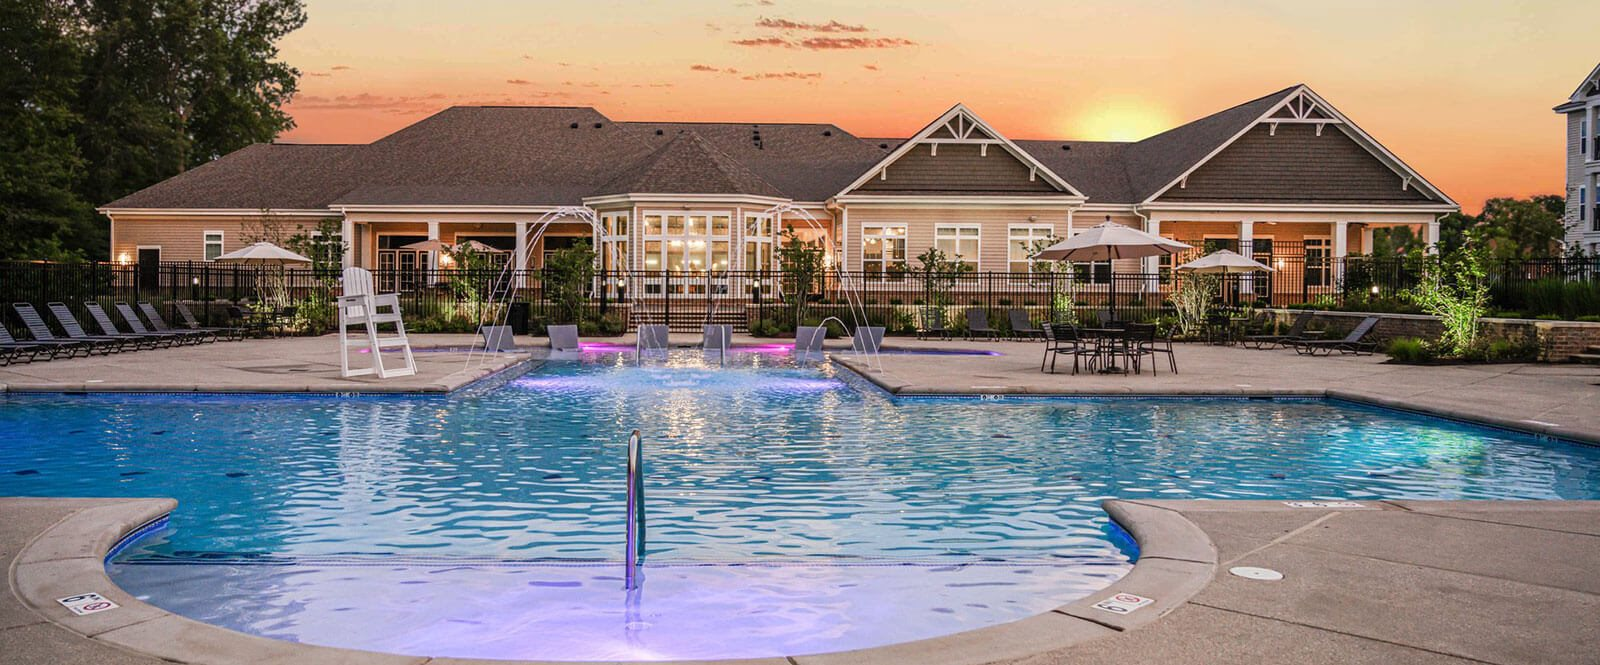 Private Pool with Relaxing Area at Abberly Square Apartment Homes, Maryland